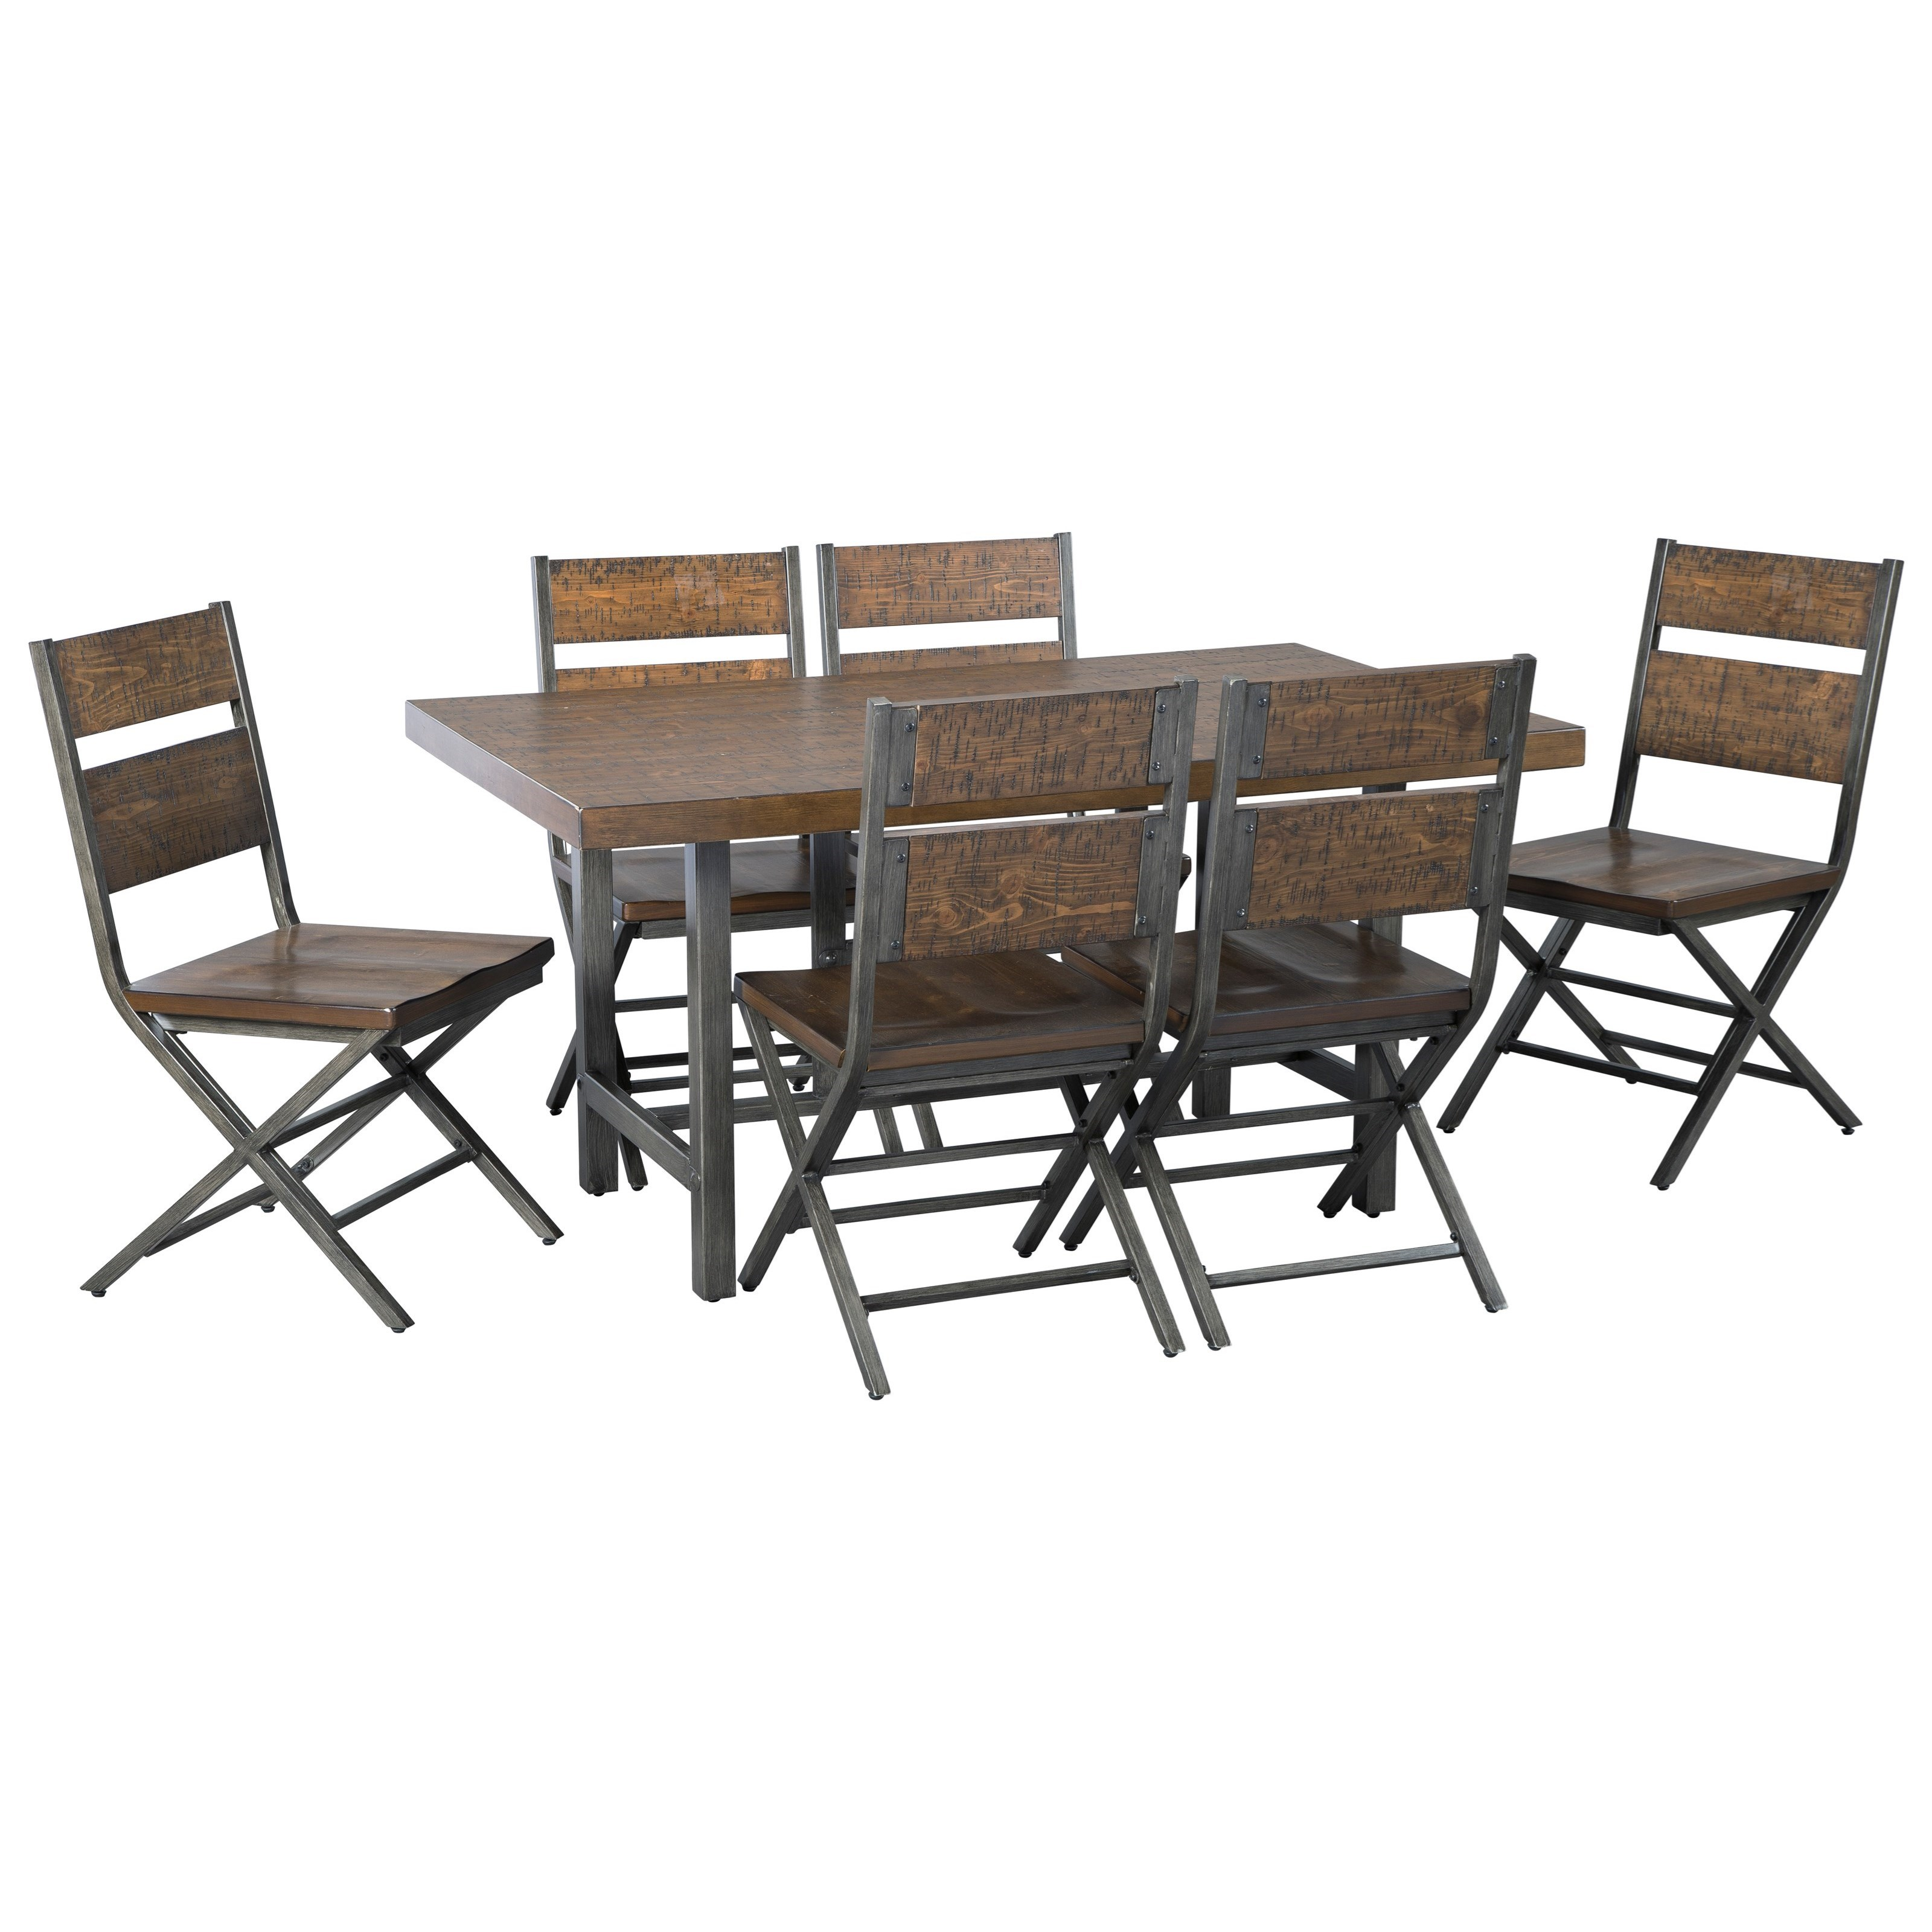 Ashley Furniture Dining Set: Signature Design By Ashley Kavara 7-Piece Distressed Pine